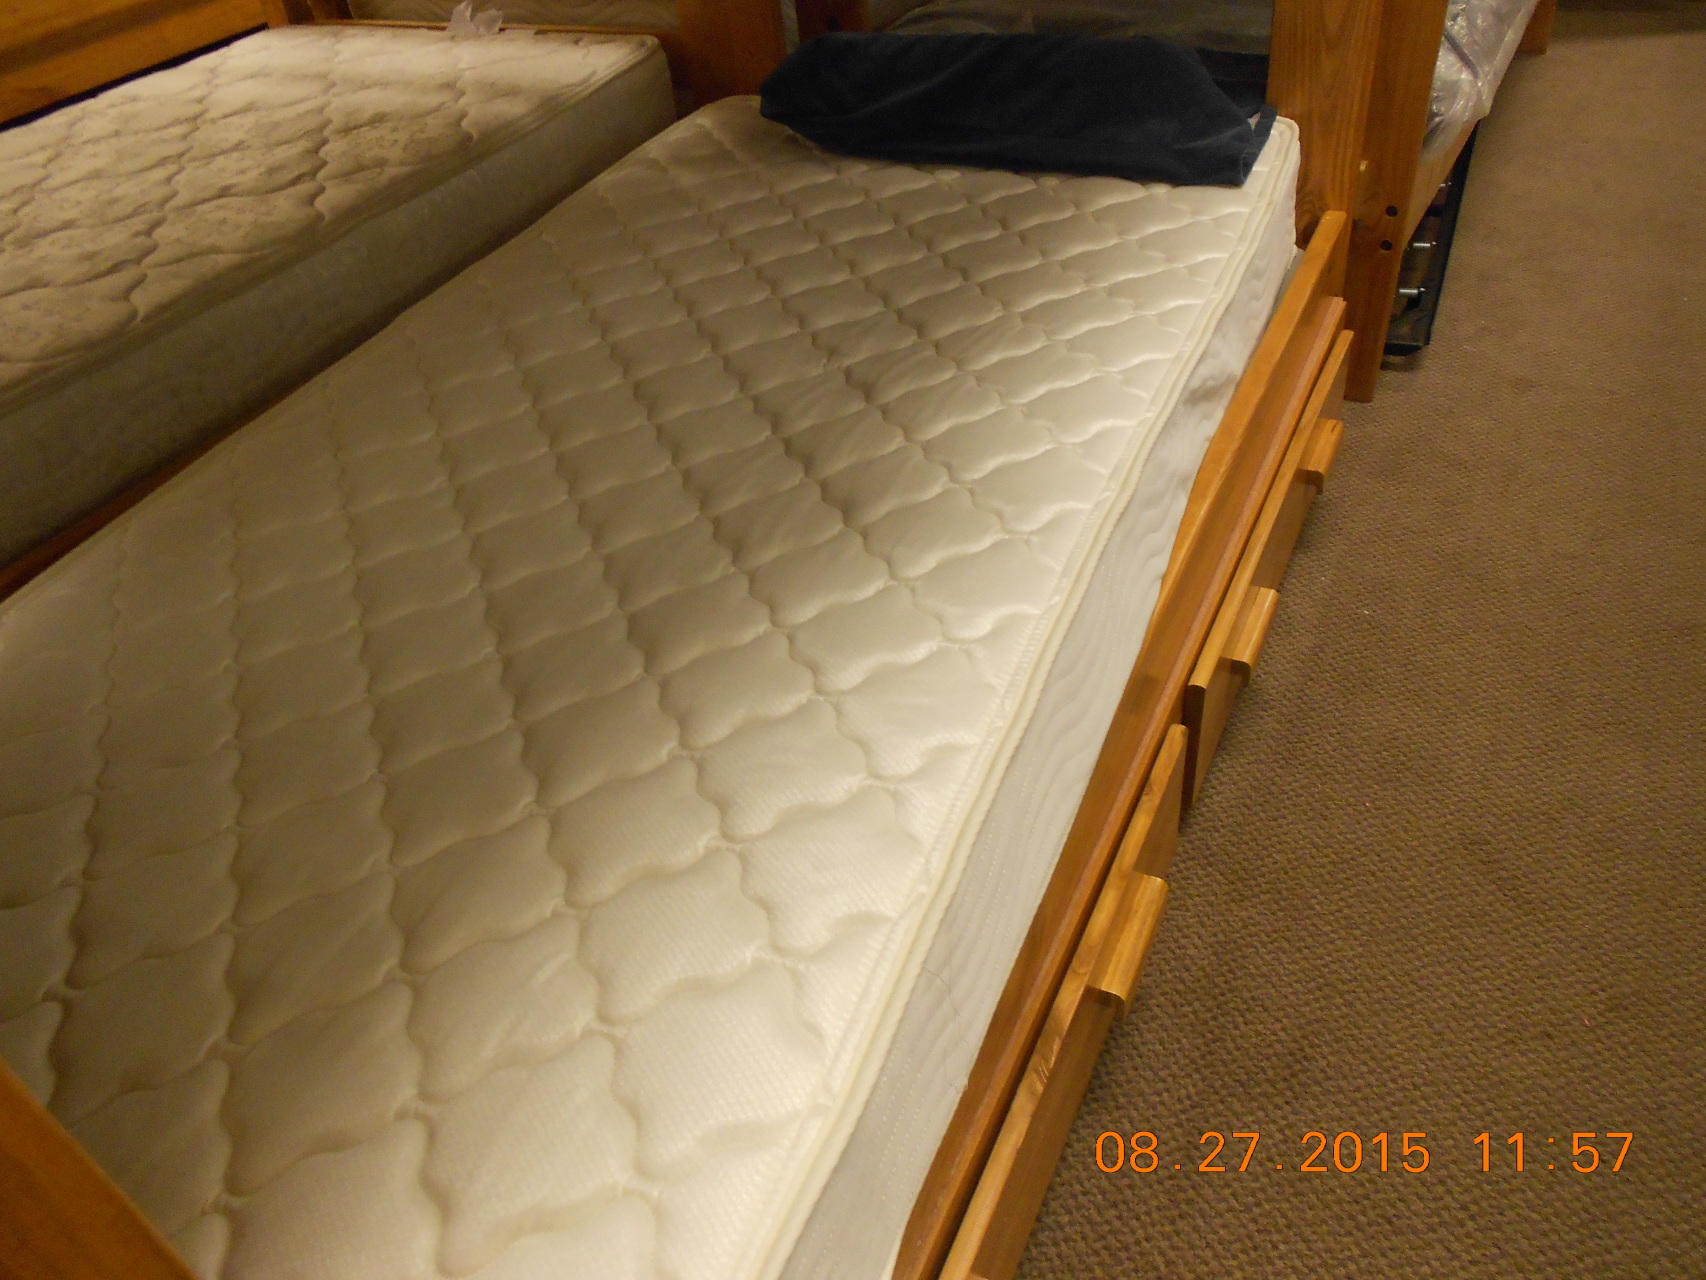 Twin Size Mattresses   Dan Dan the Mattress Man Mattresses     Dan Dan the Mattress Man Mattresses   Assorted Furniture